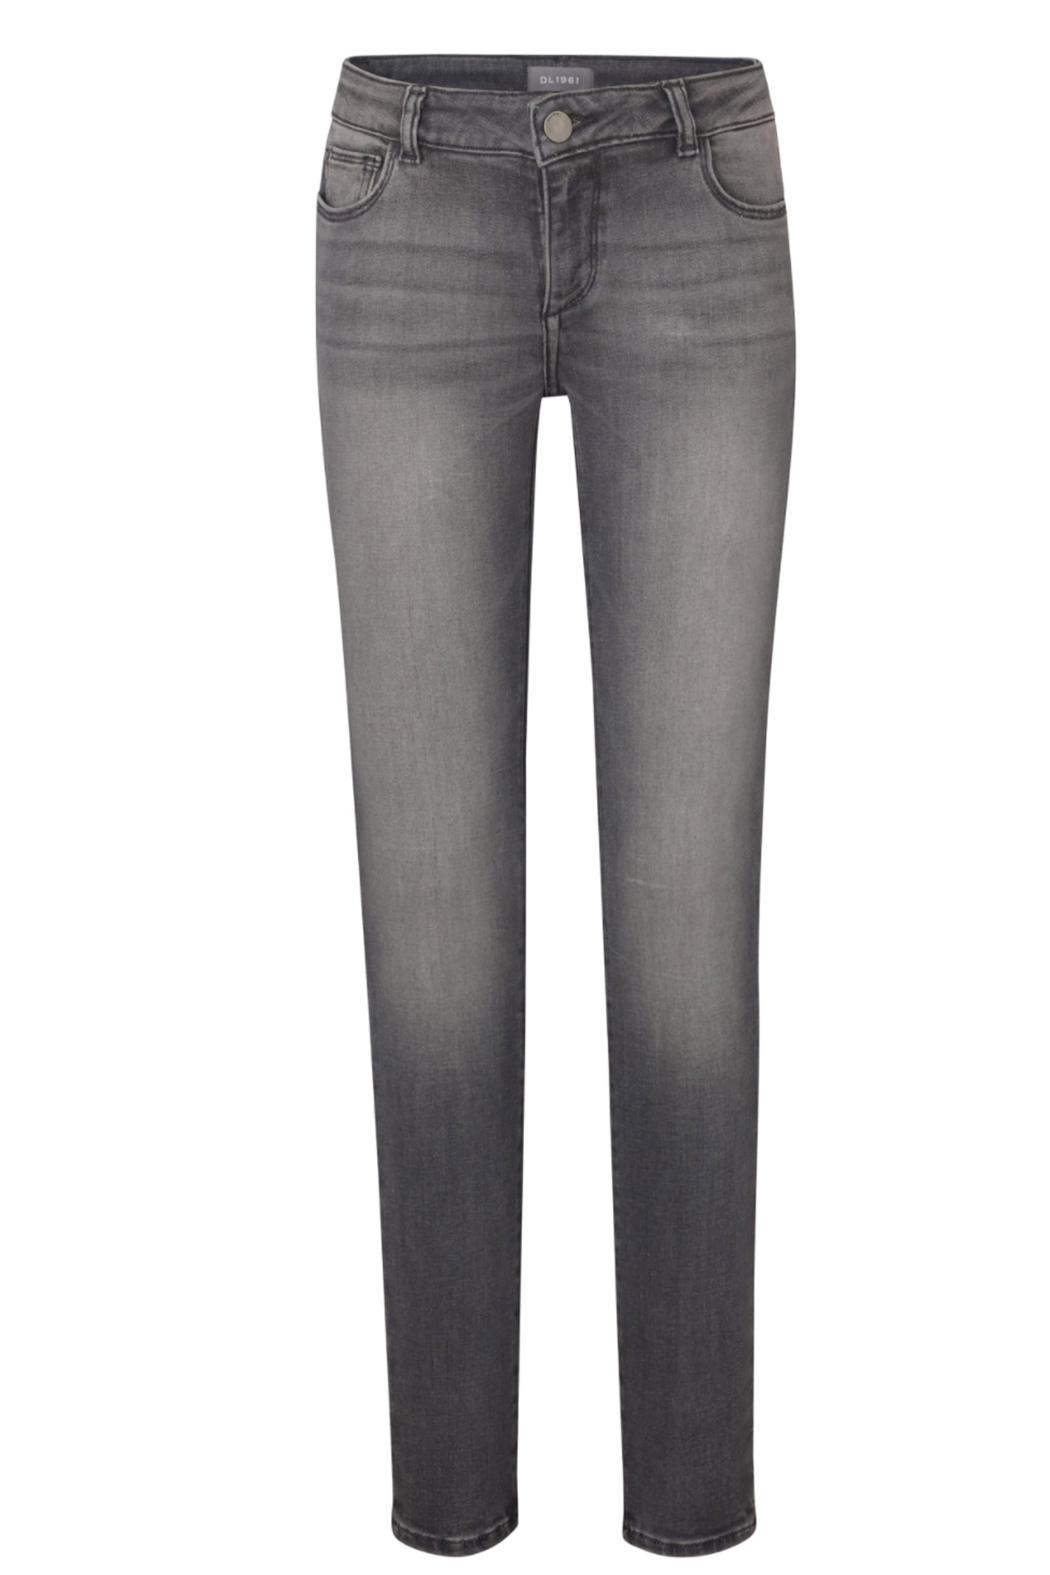 DL1961 Chloe Skinny Youth Jeans - Drizzle - Main Image